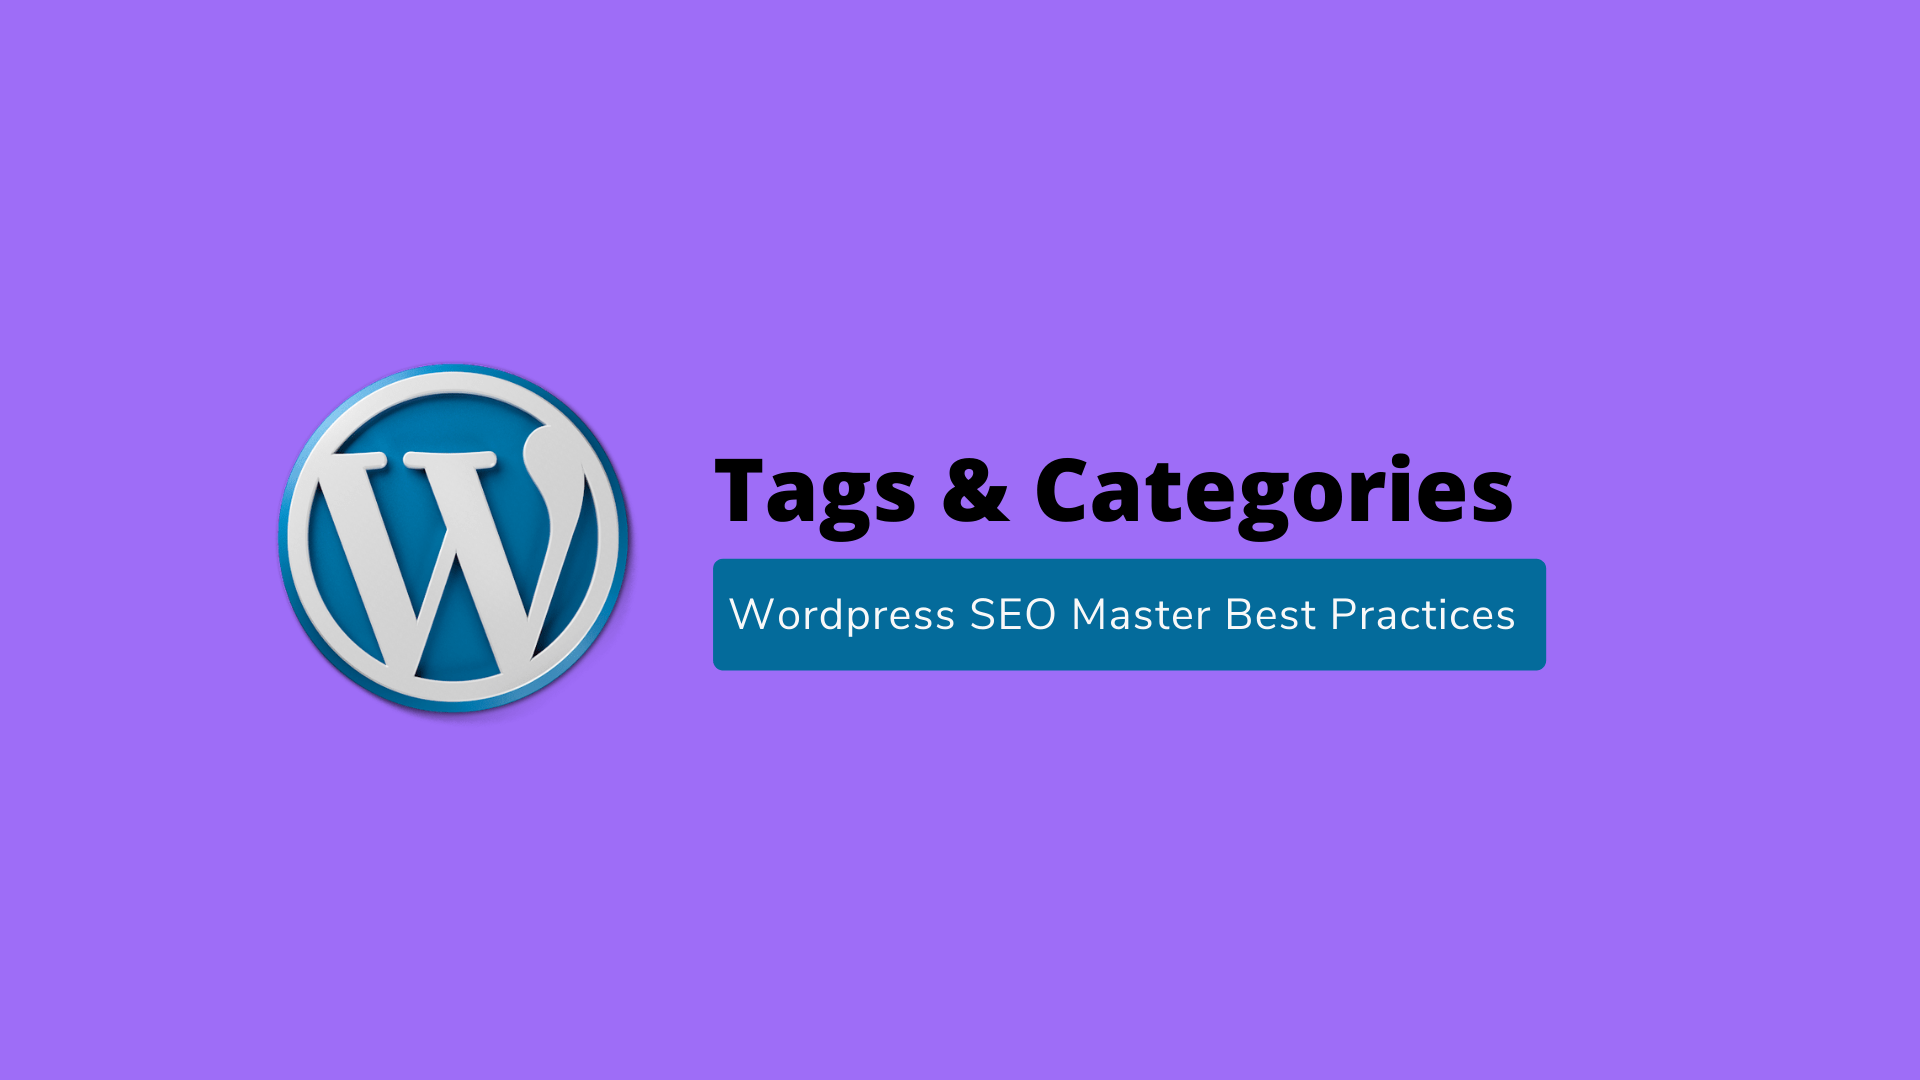 Tags & Categories | WordPress SEO Master Best Practices